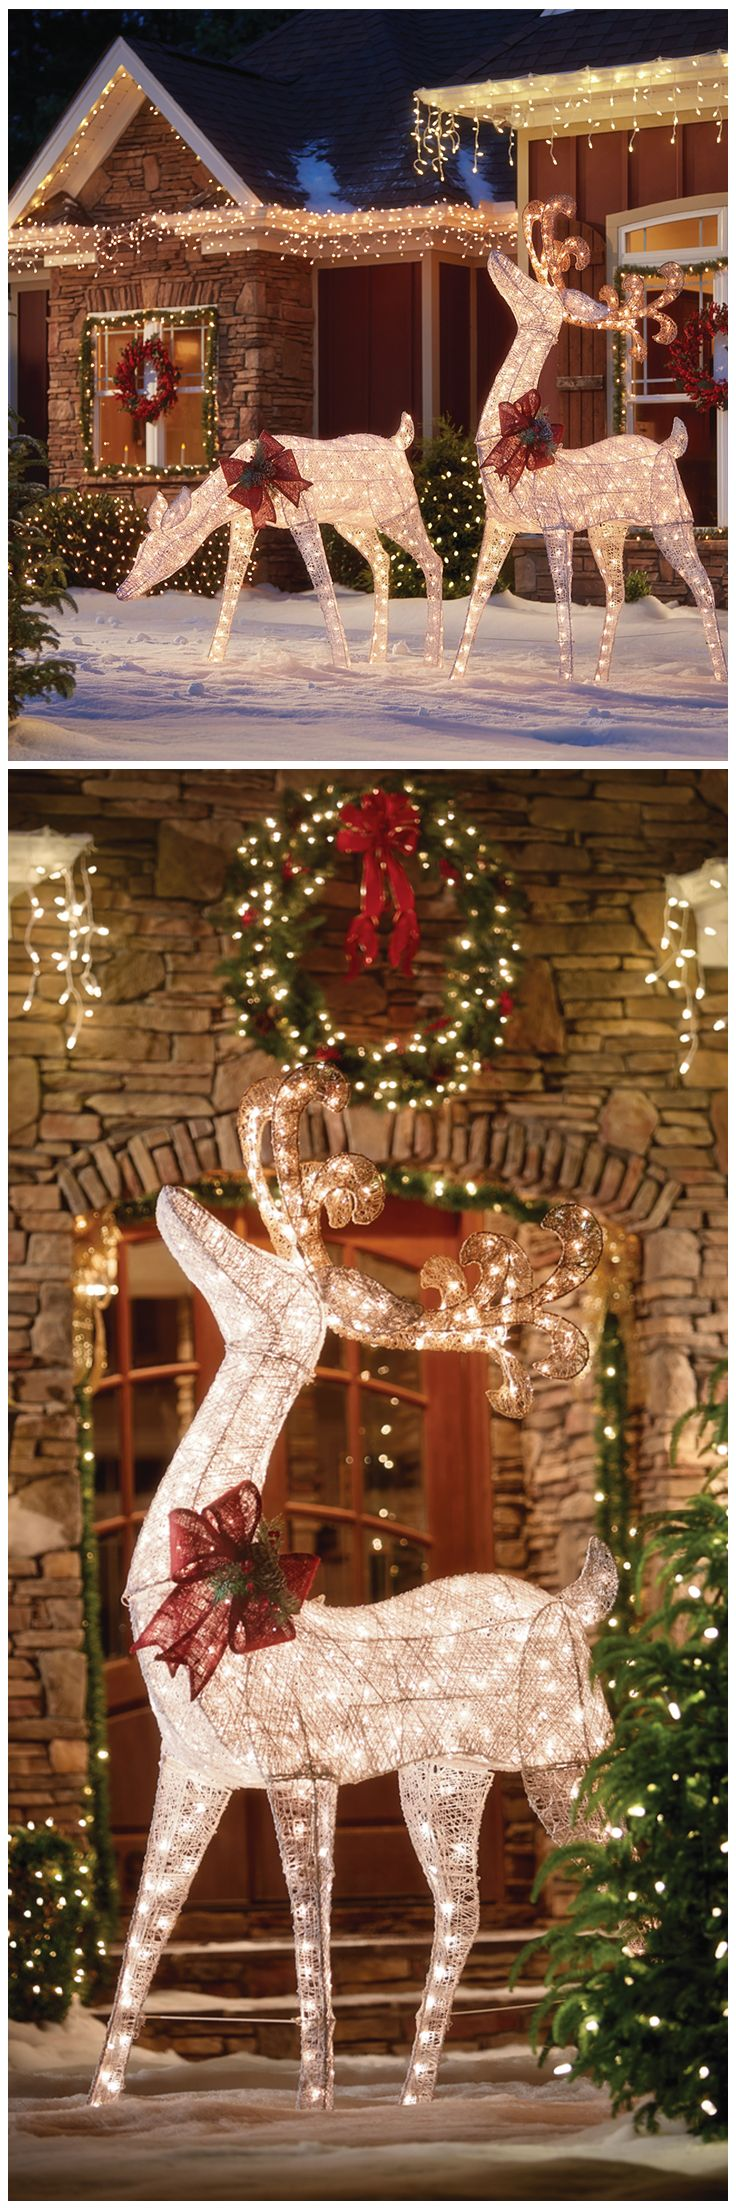 Christmas yard decorations - These Luminous Deer Figures Will Add A Classic Rustic Charm To Your Outdoor Christmas D Cor